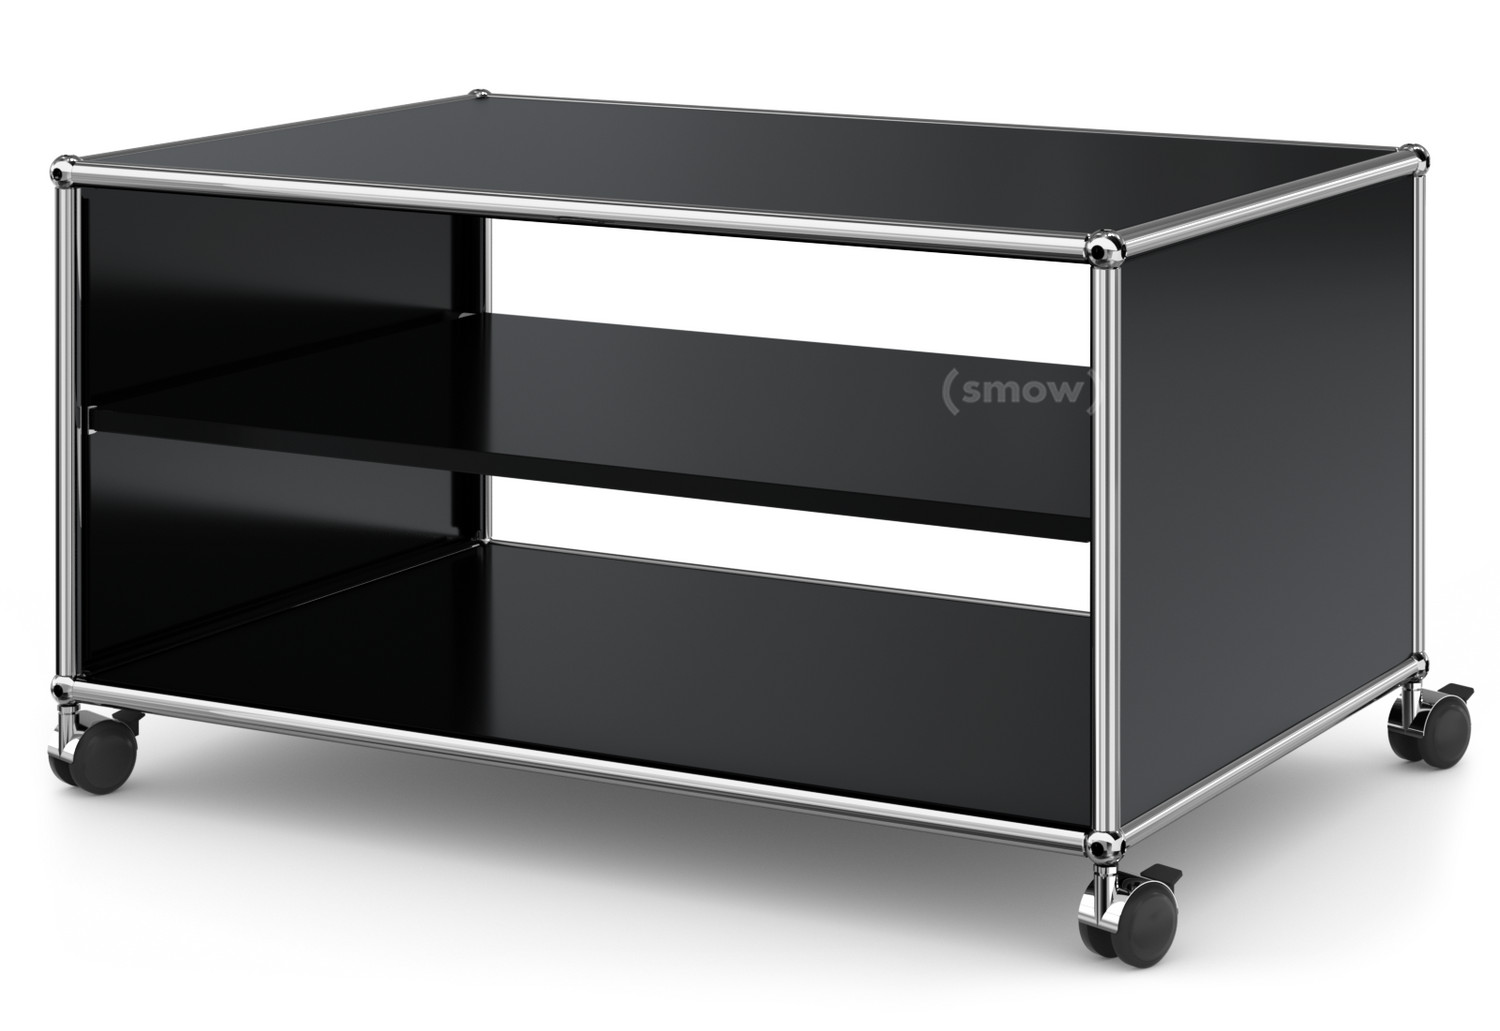 usm haller tv lowboard auf rollen offen graphitschwarz. Black Bedroom Furniture Sets. Home Design Ideas